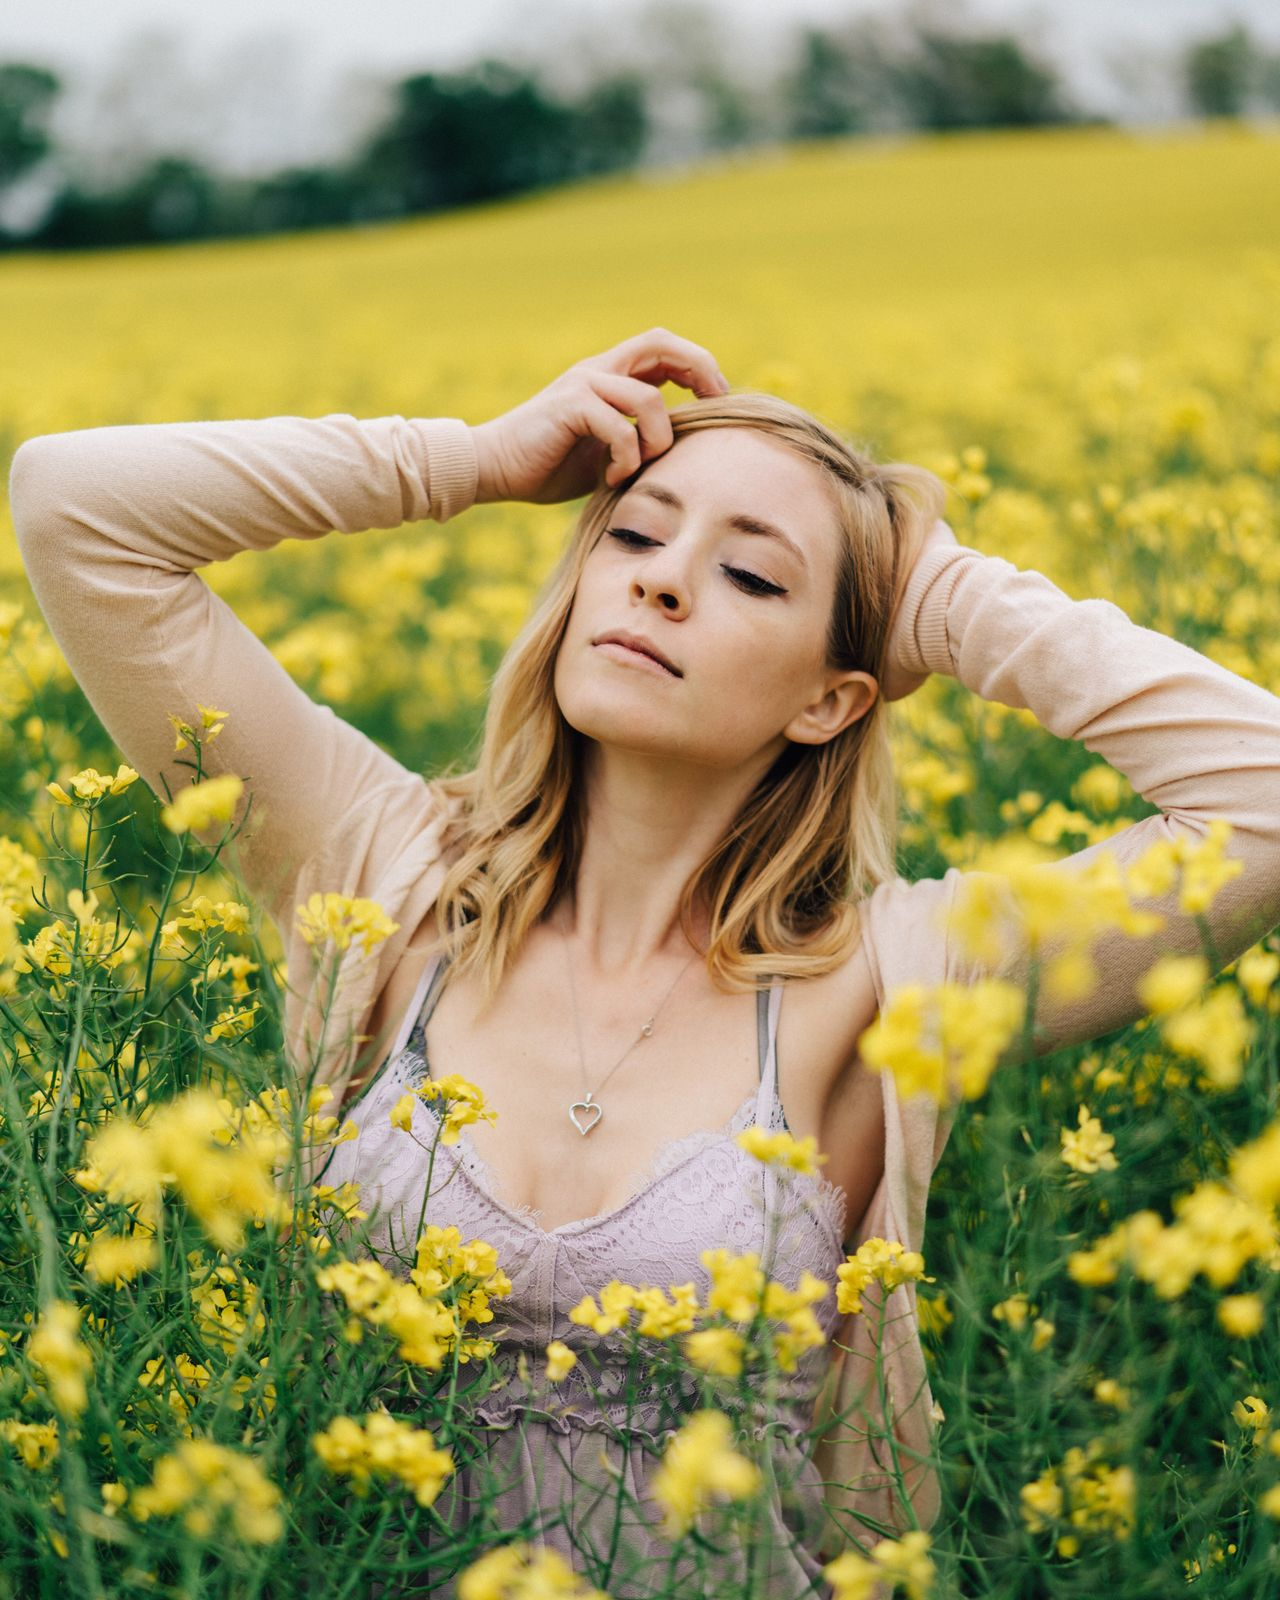 Flower Yellow One Person Eyes Closed  Young Women Beautiful Woman Nature Lifestyles Young Adult Women Real People Leisure Activity Outdoors Day Beauty Growth Beauty In Nature Plant Only Women Fragility The Great Outdoors - 2017 EyeEm Awards